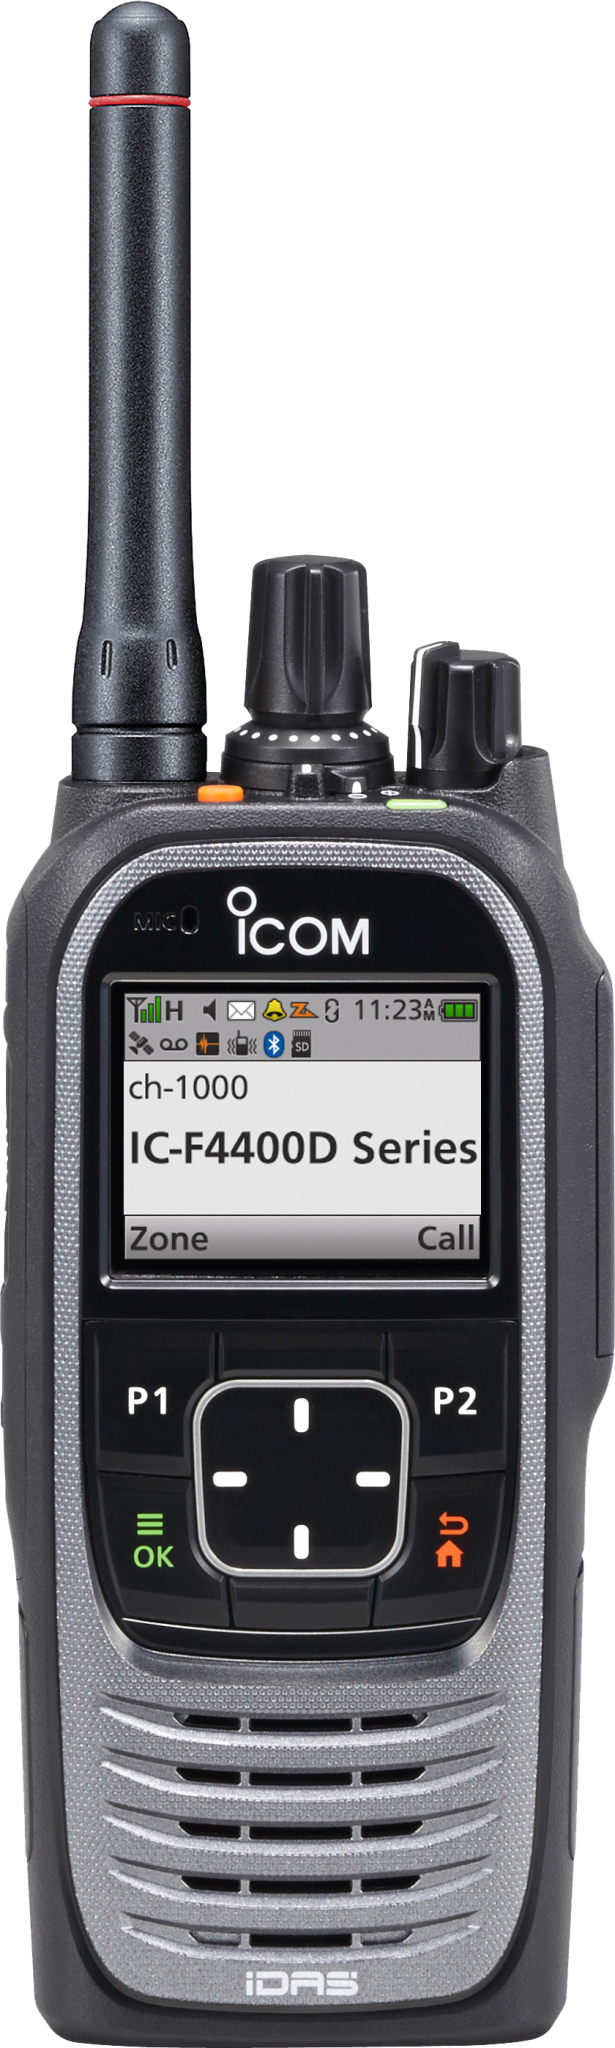 Icom IC-F4400DS featured image